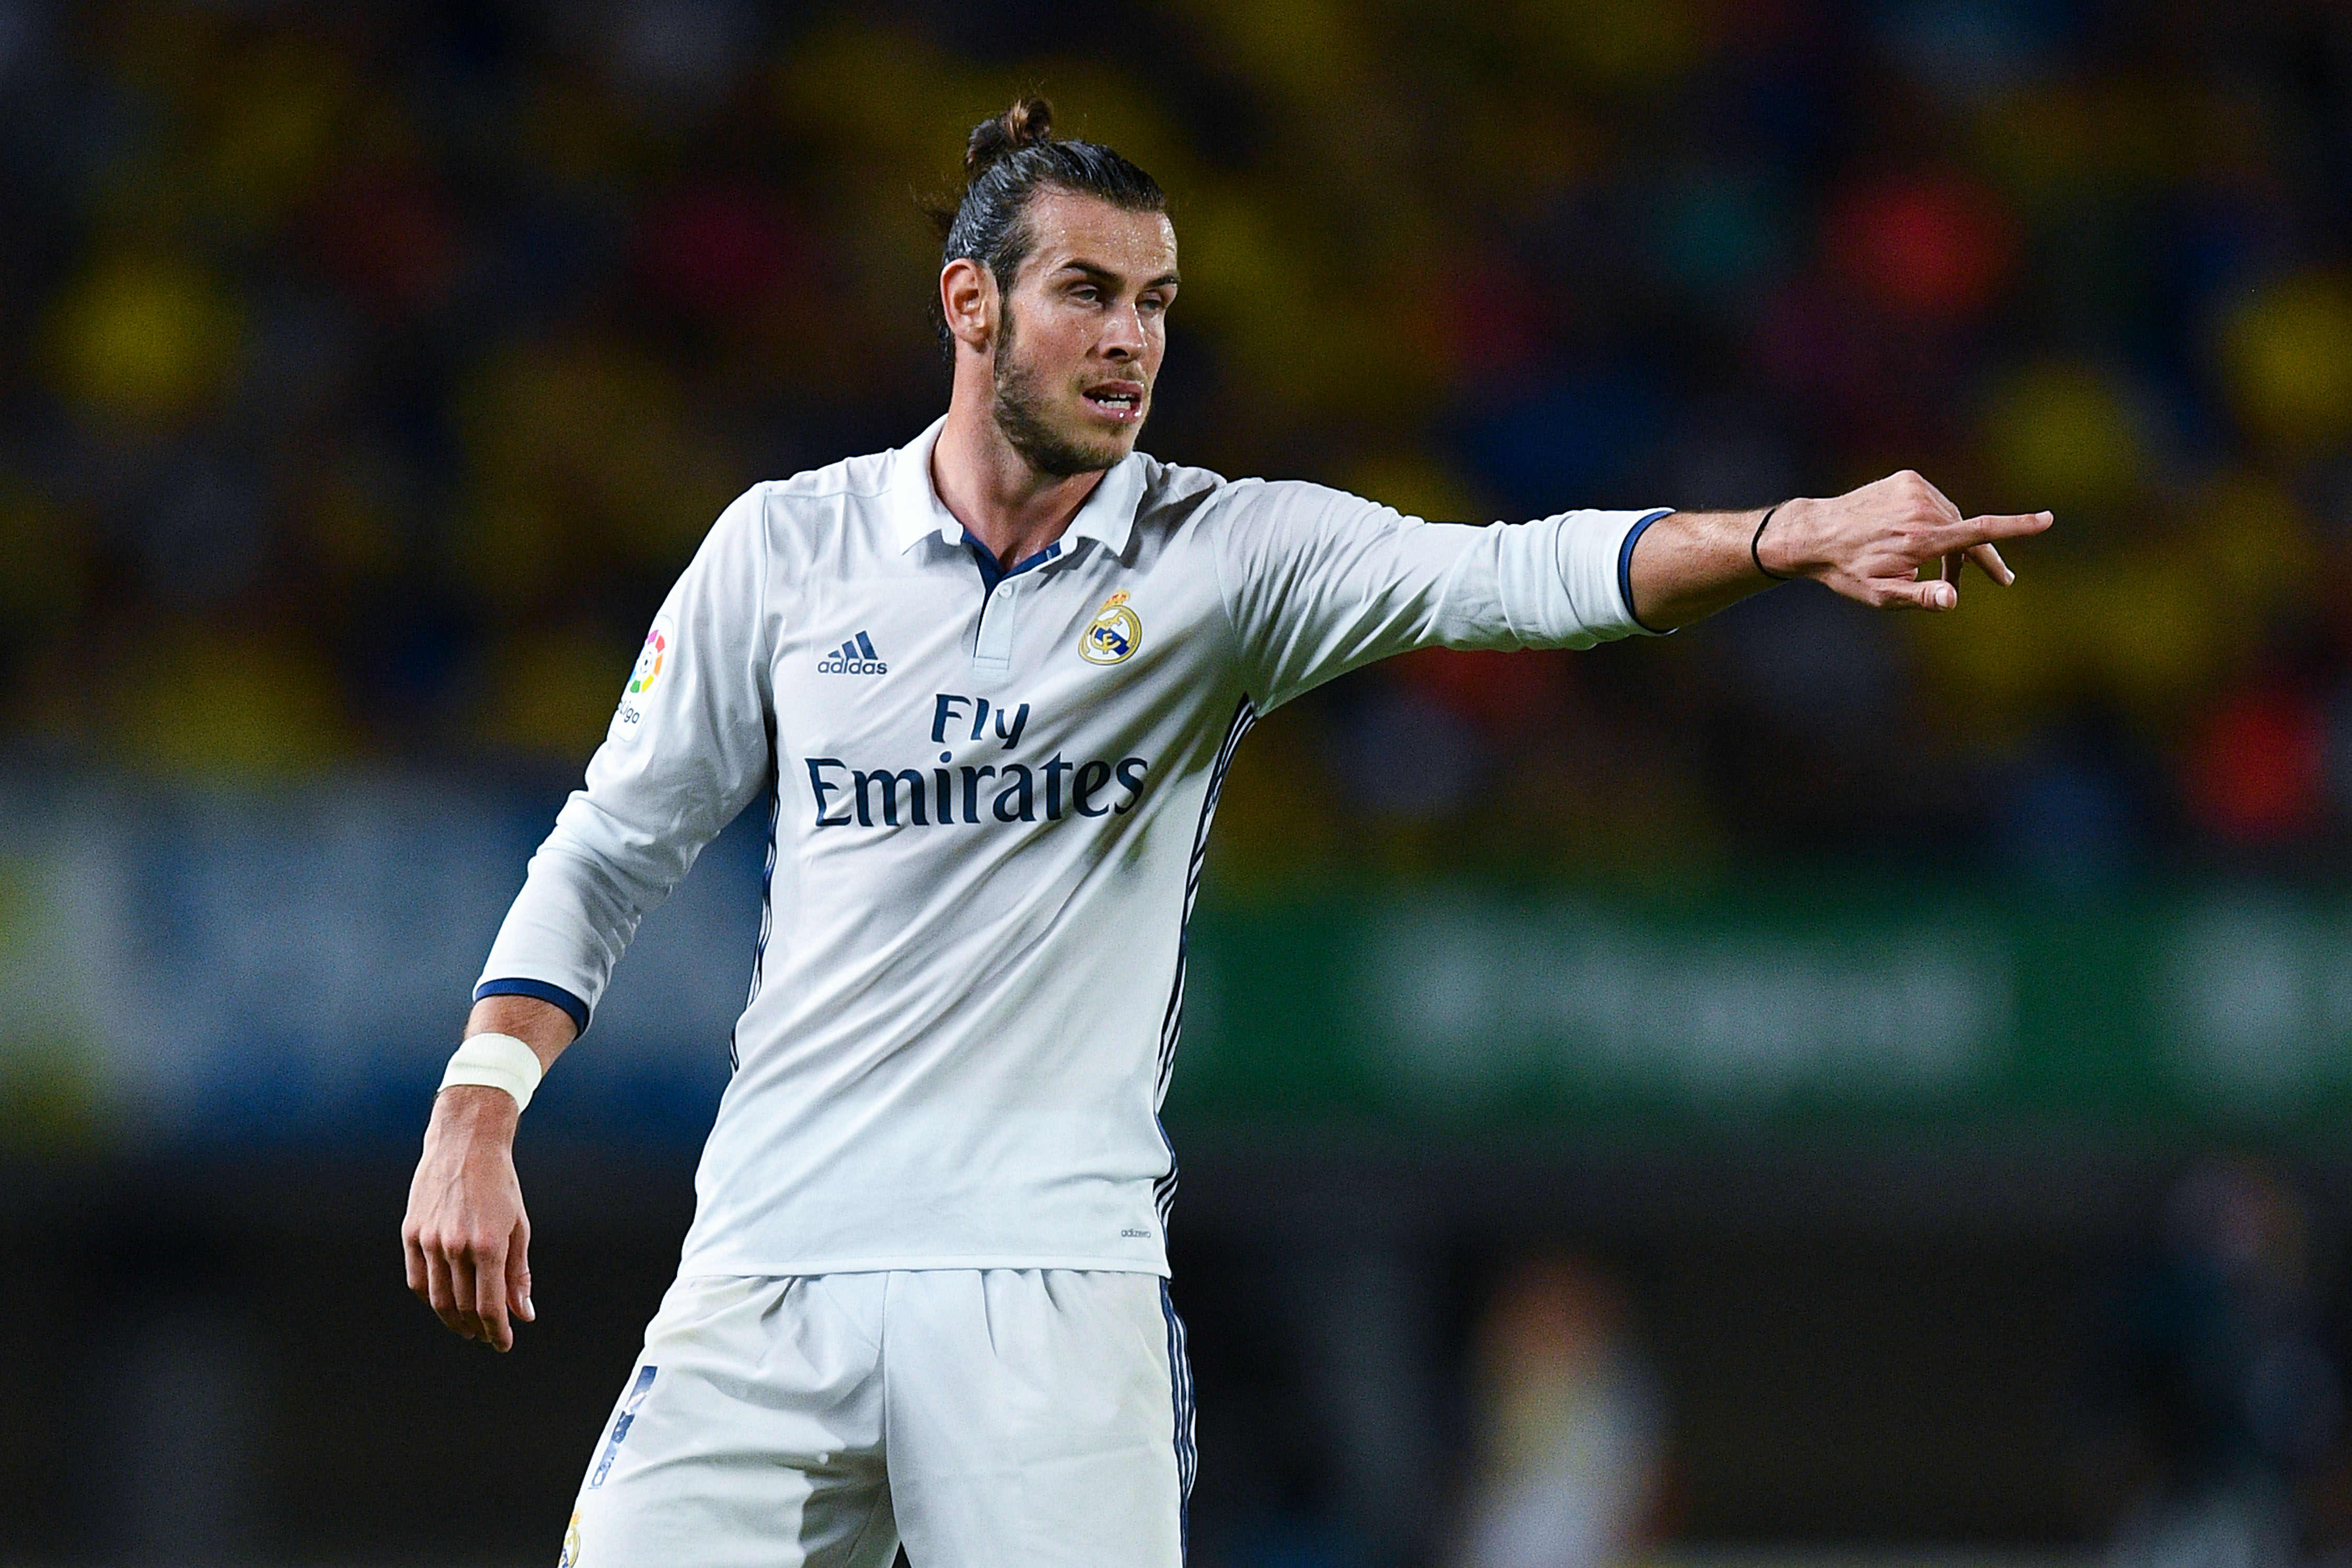 Gareth Bale Is Under Armed Guard After Bizarre Cocaine Heist GettyImages 610290752